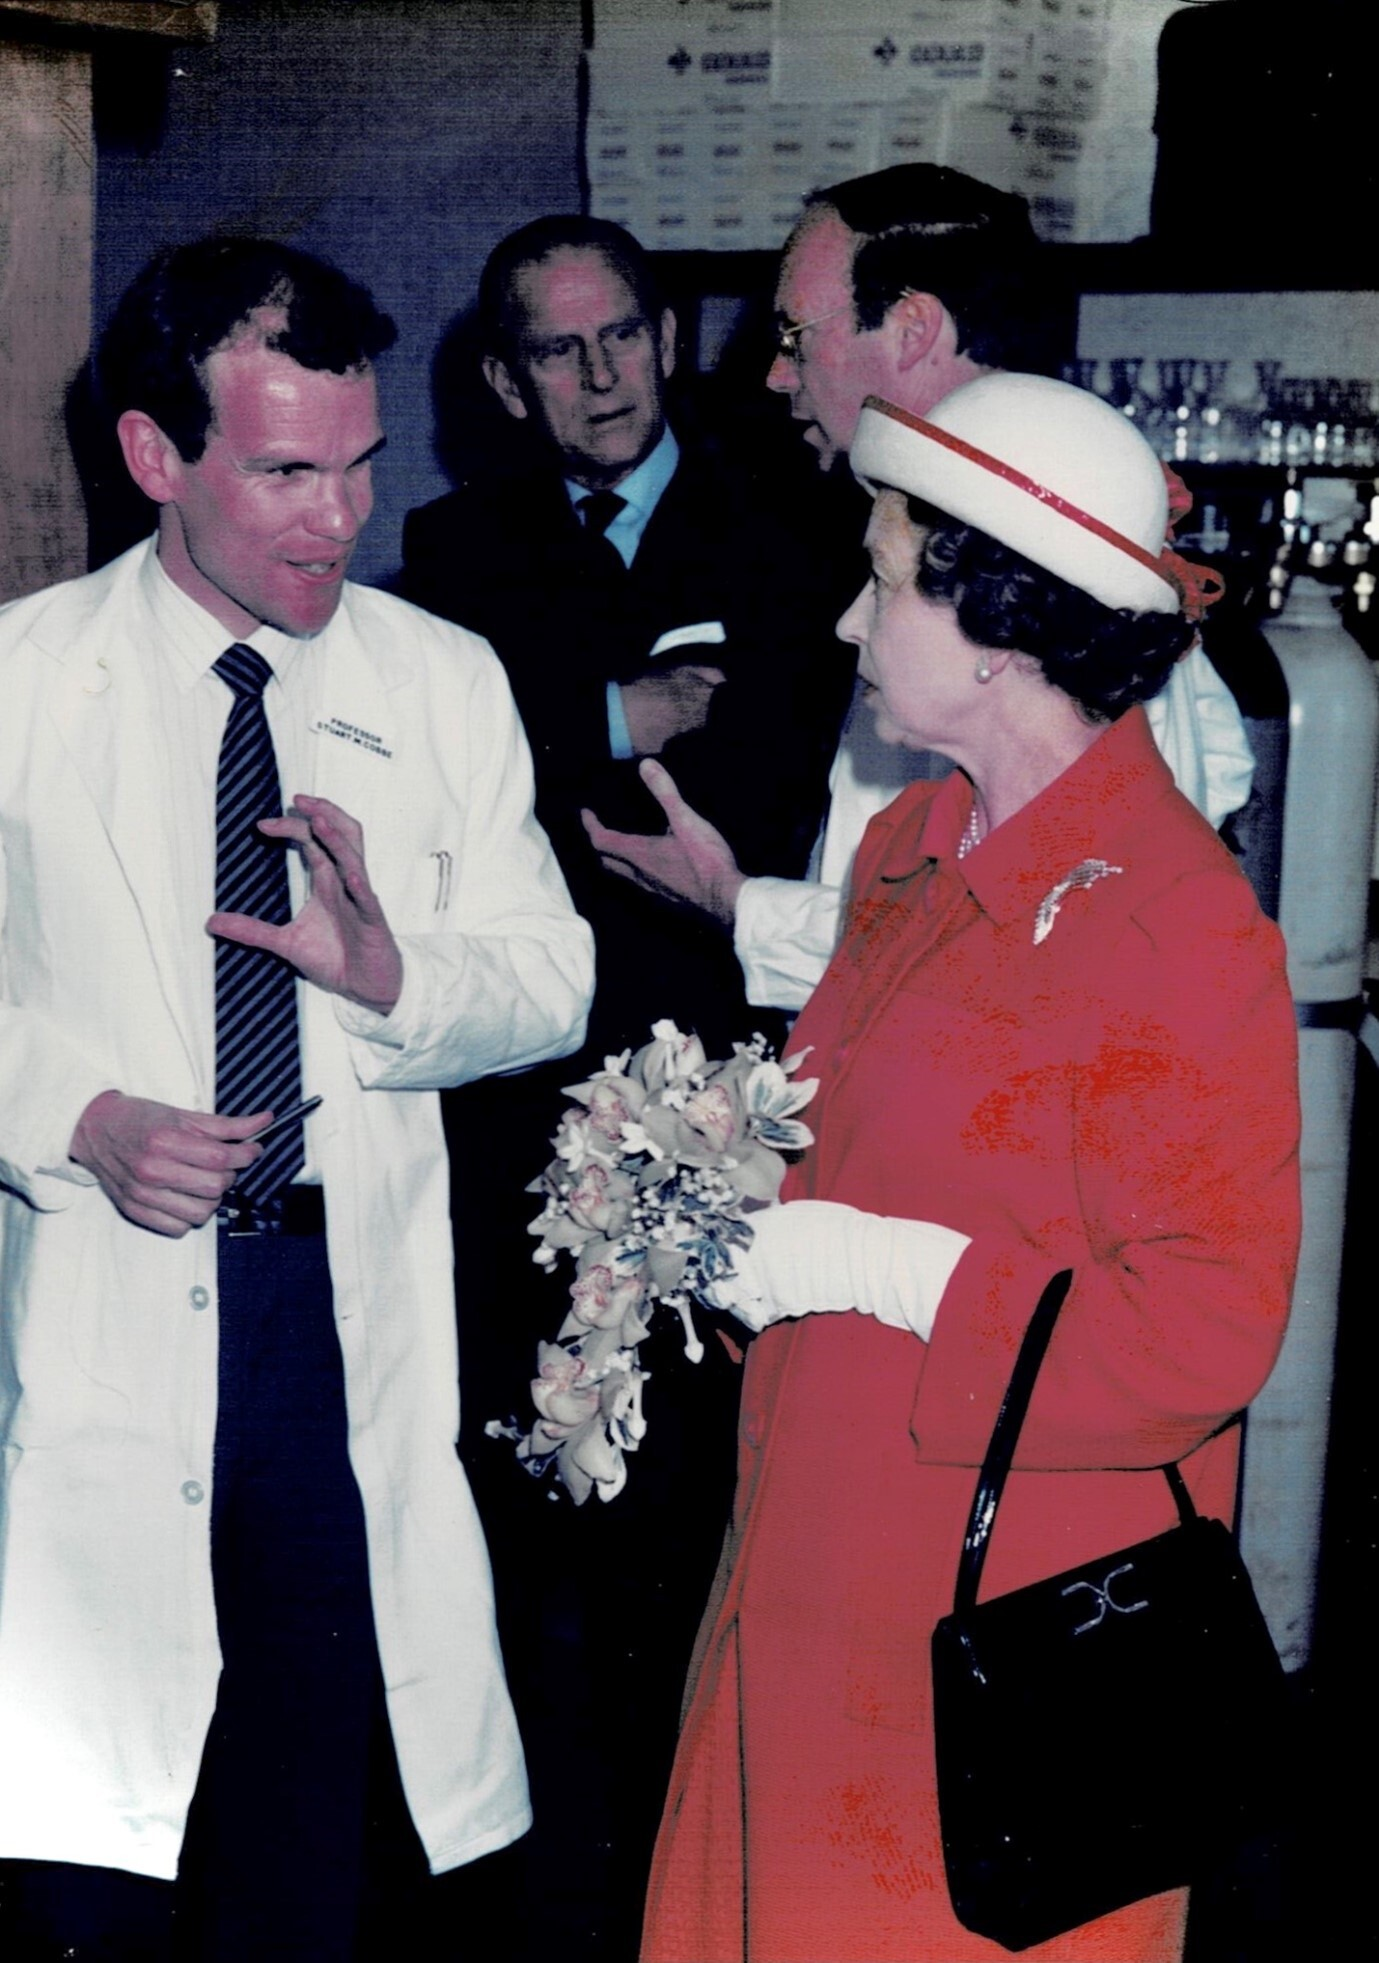 Stuart Cobbe with HM the Queen and Prince Philip, the Duke of Edinburgh